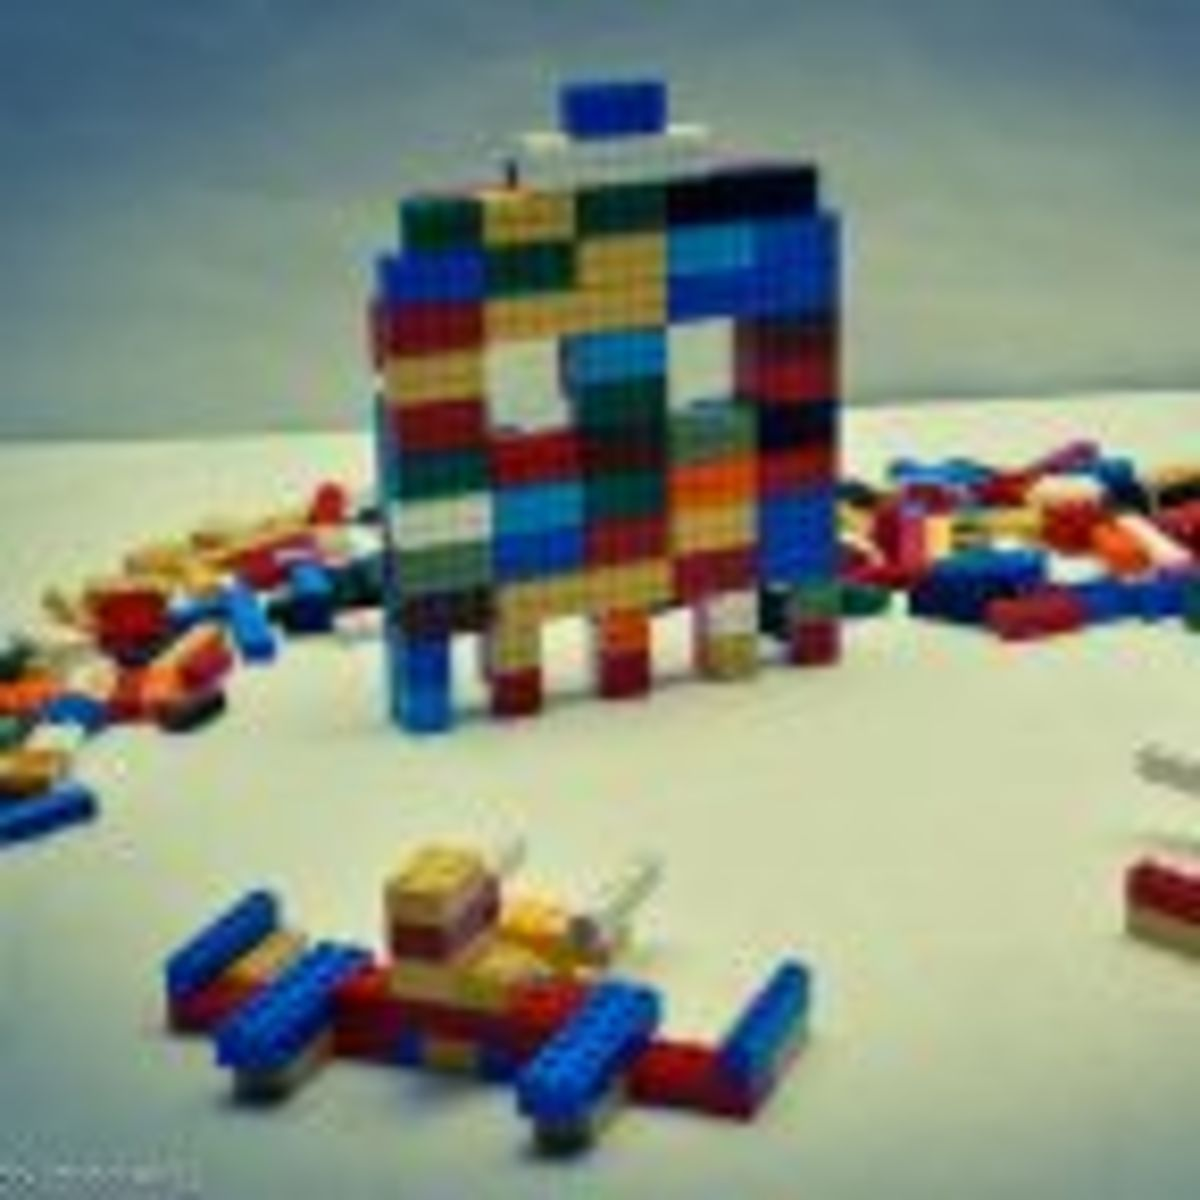 Building With LEGO Kit Instructions Makes Kids Less Creative